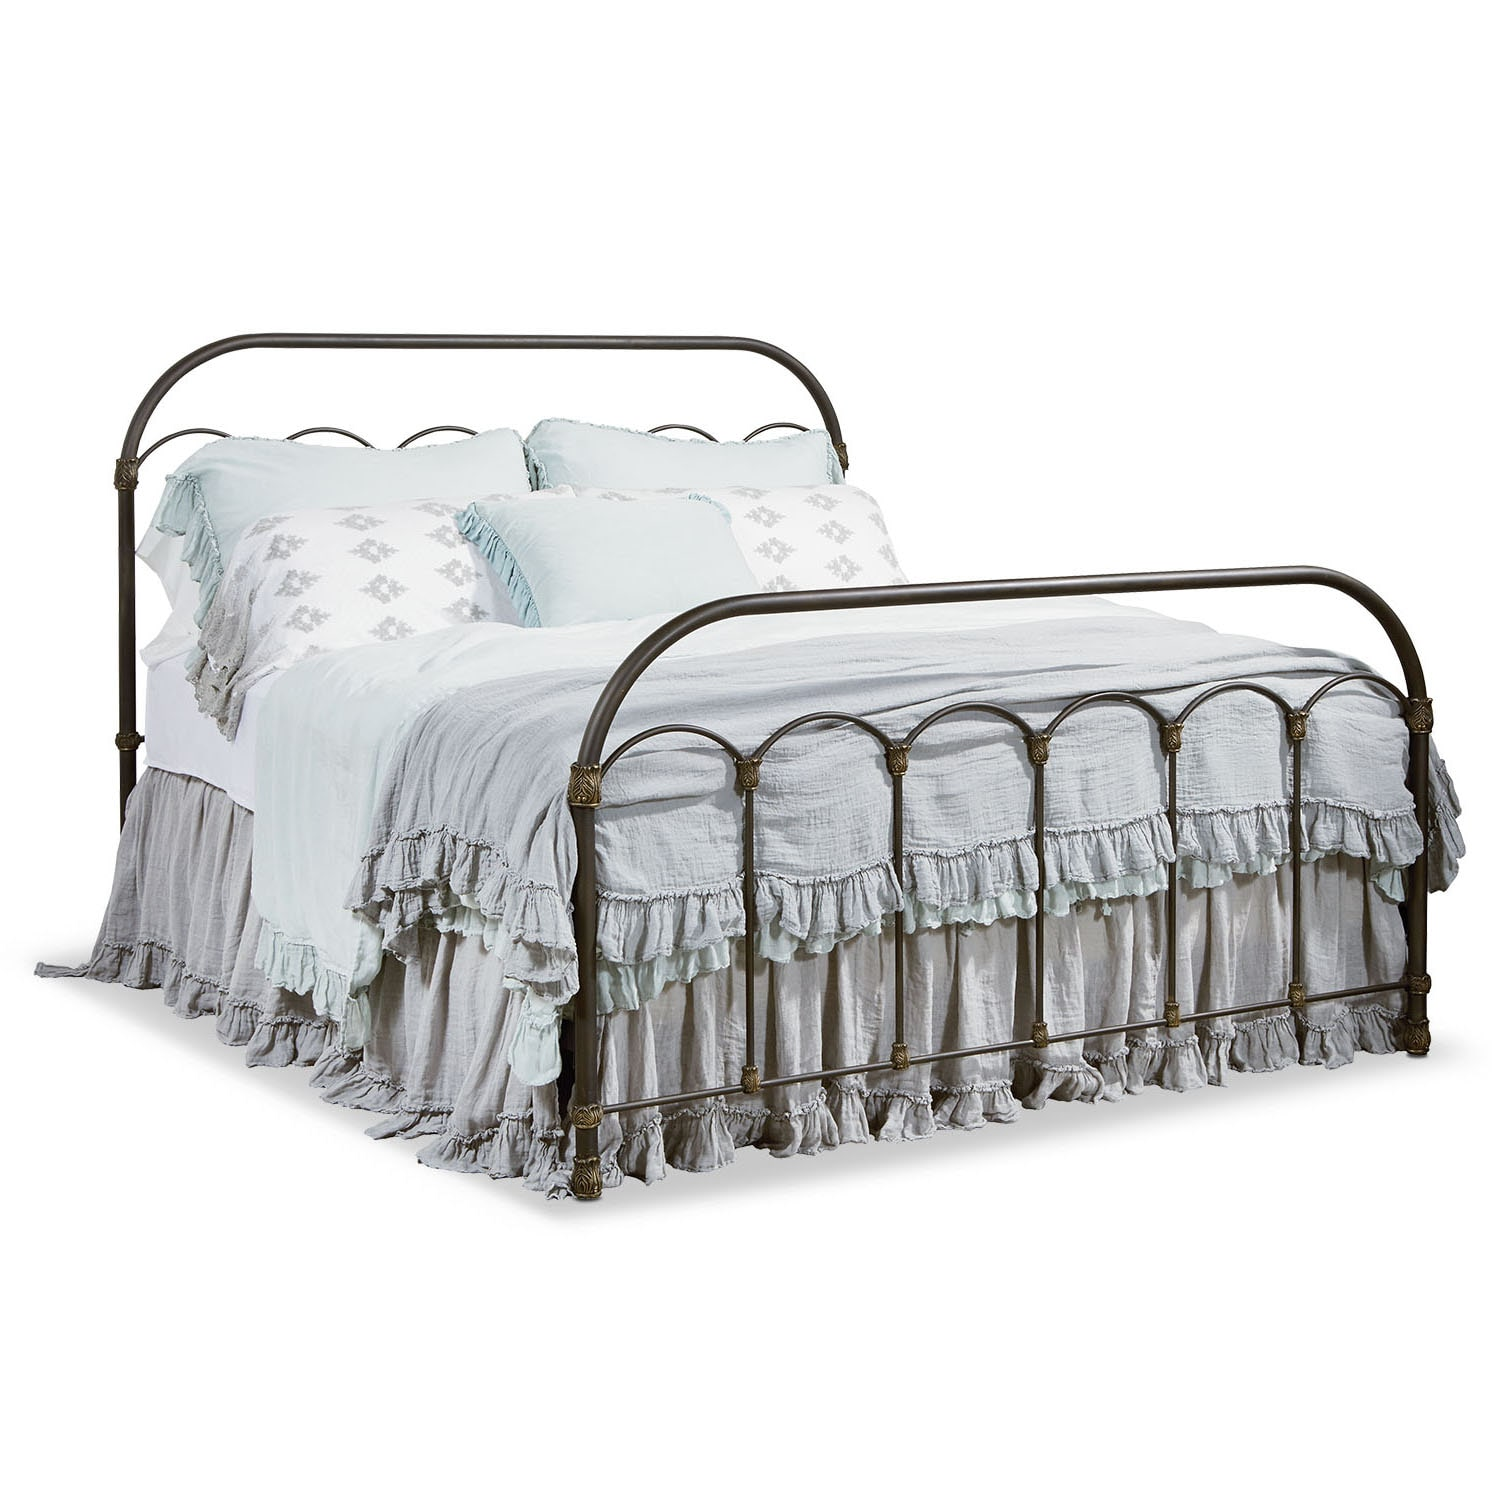 Colonnade Metal Queen Bed - Blackened Bronze